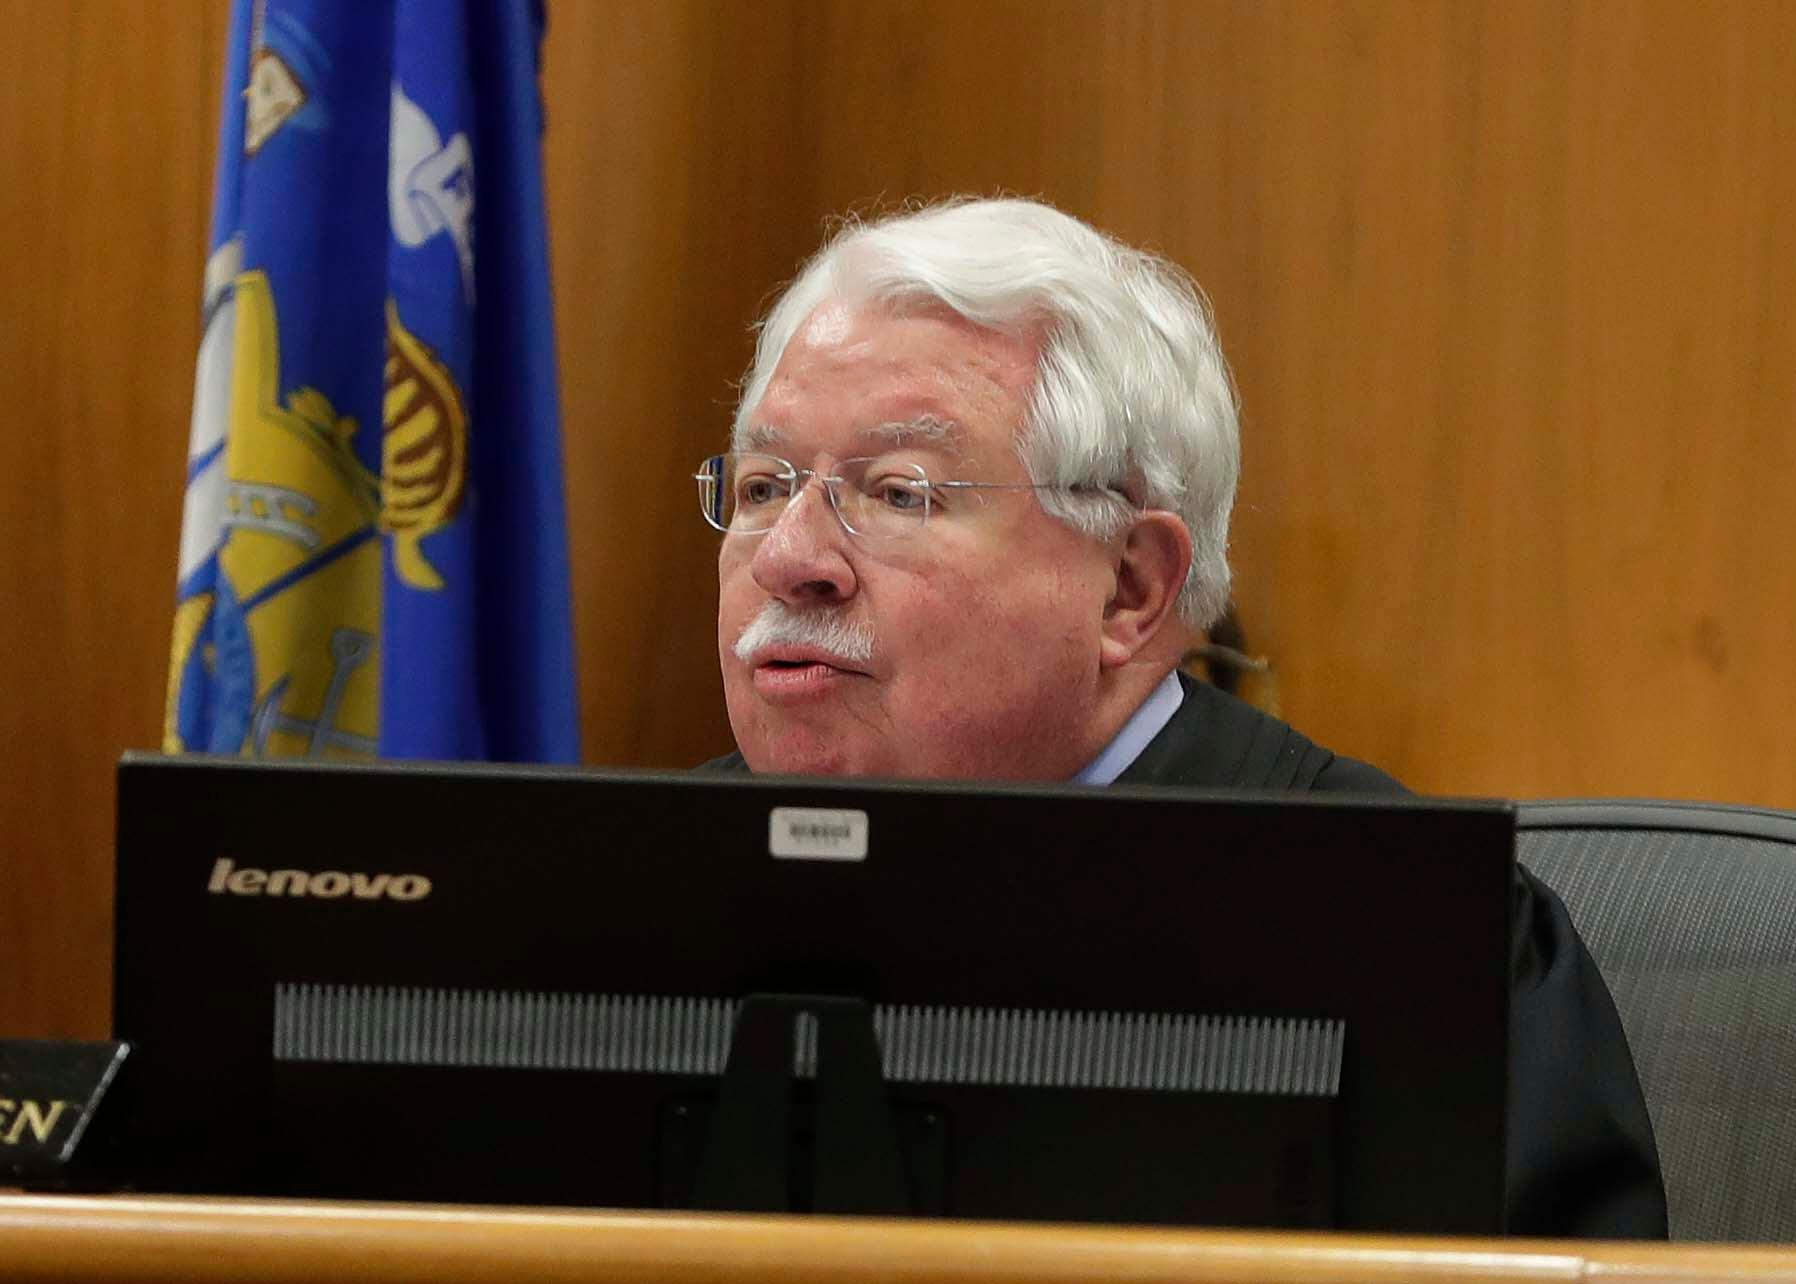 Waukesha County Circuit Judge Michael Bohren, begins the sentencing phase in the trial of Morgan Geyser, Thursday, Feb. 1, 2018 in Waukesha, Wis.   Geyser is one of two girls who tried to kill a classmate with a knife to appease fictional horror character Slender Man.  Prosecutors want Geyser to spend the maximum 40 years in a mental hospital for stabbing Payton Leutner in suburban Milwaukee in 2014.  (Rick Wood/Milwaukee Journal-Sentinel via AP, Pool)